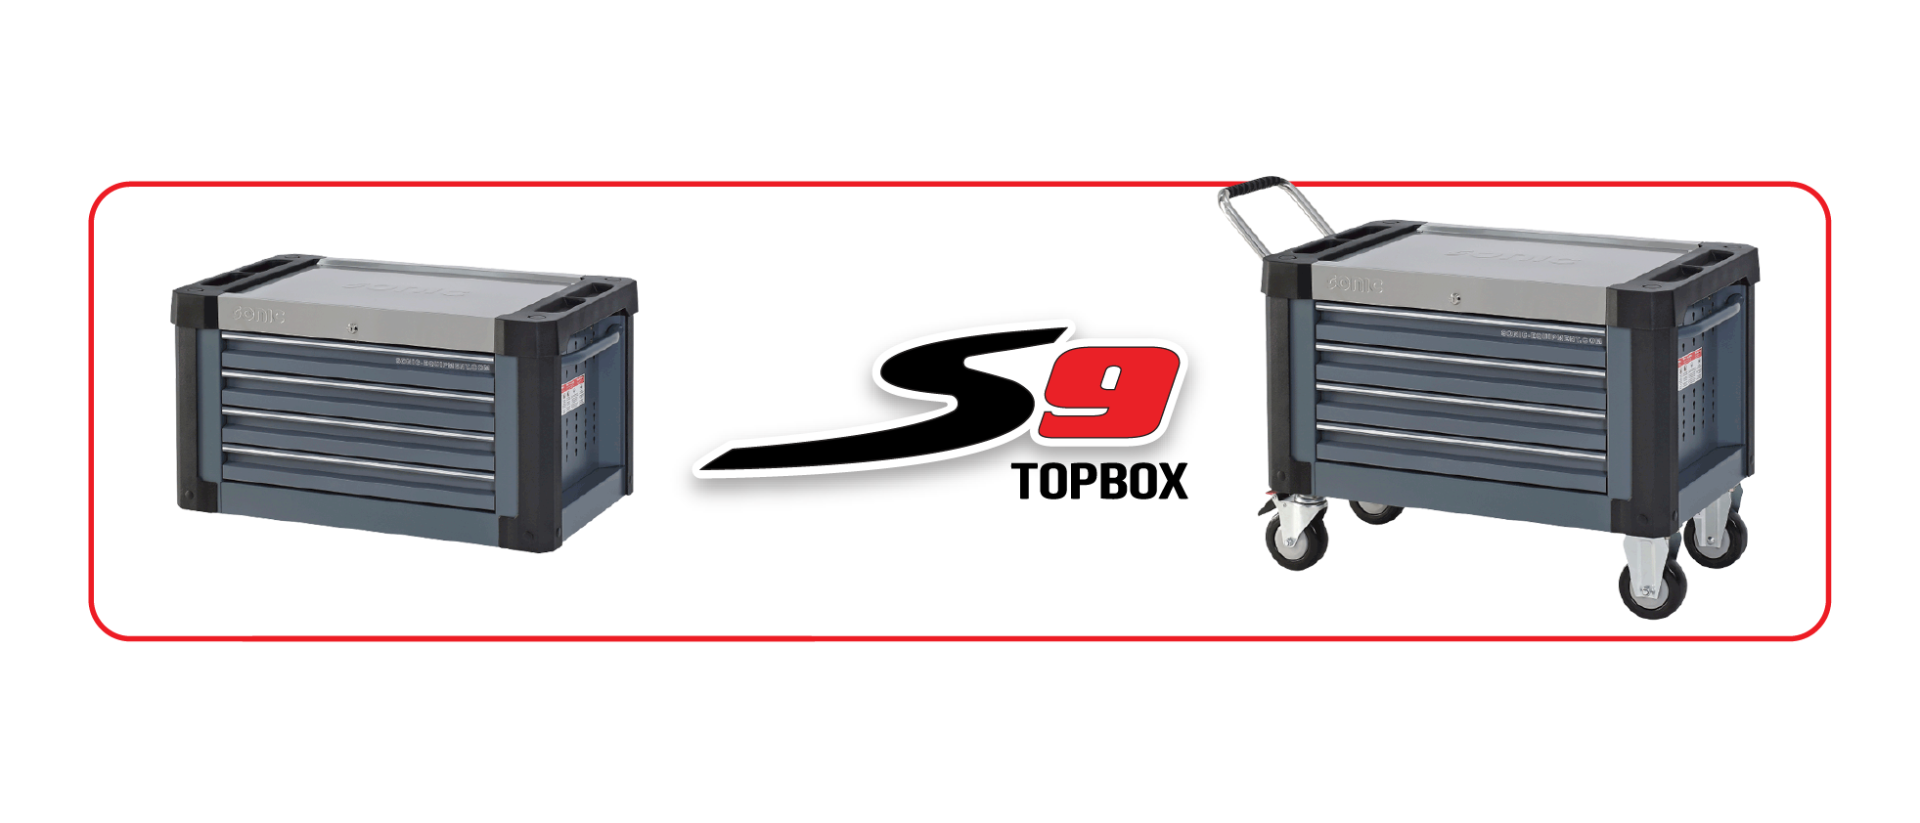 Filled Sonic Topbox toolbox